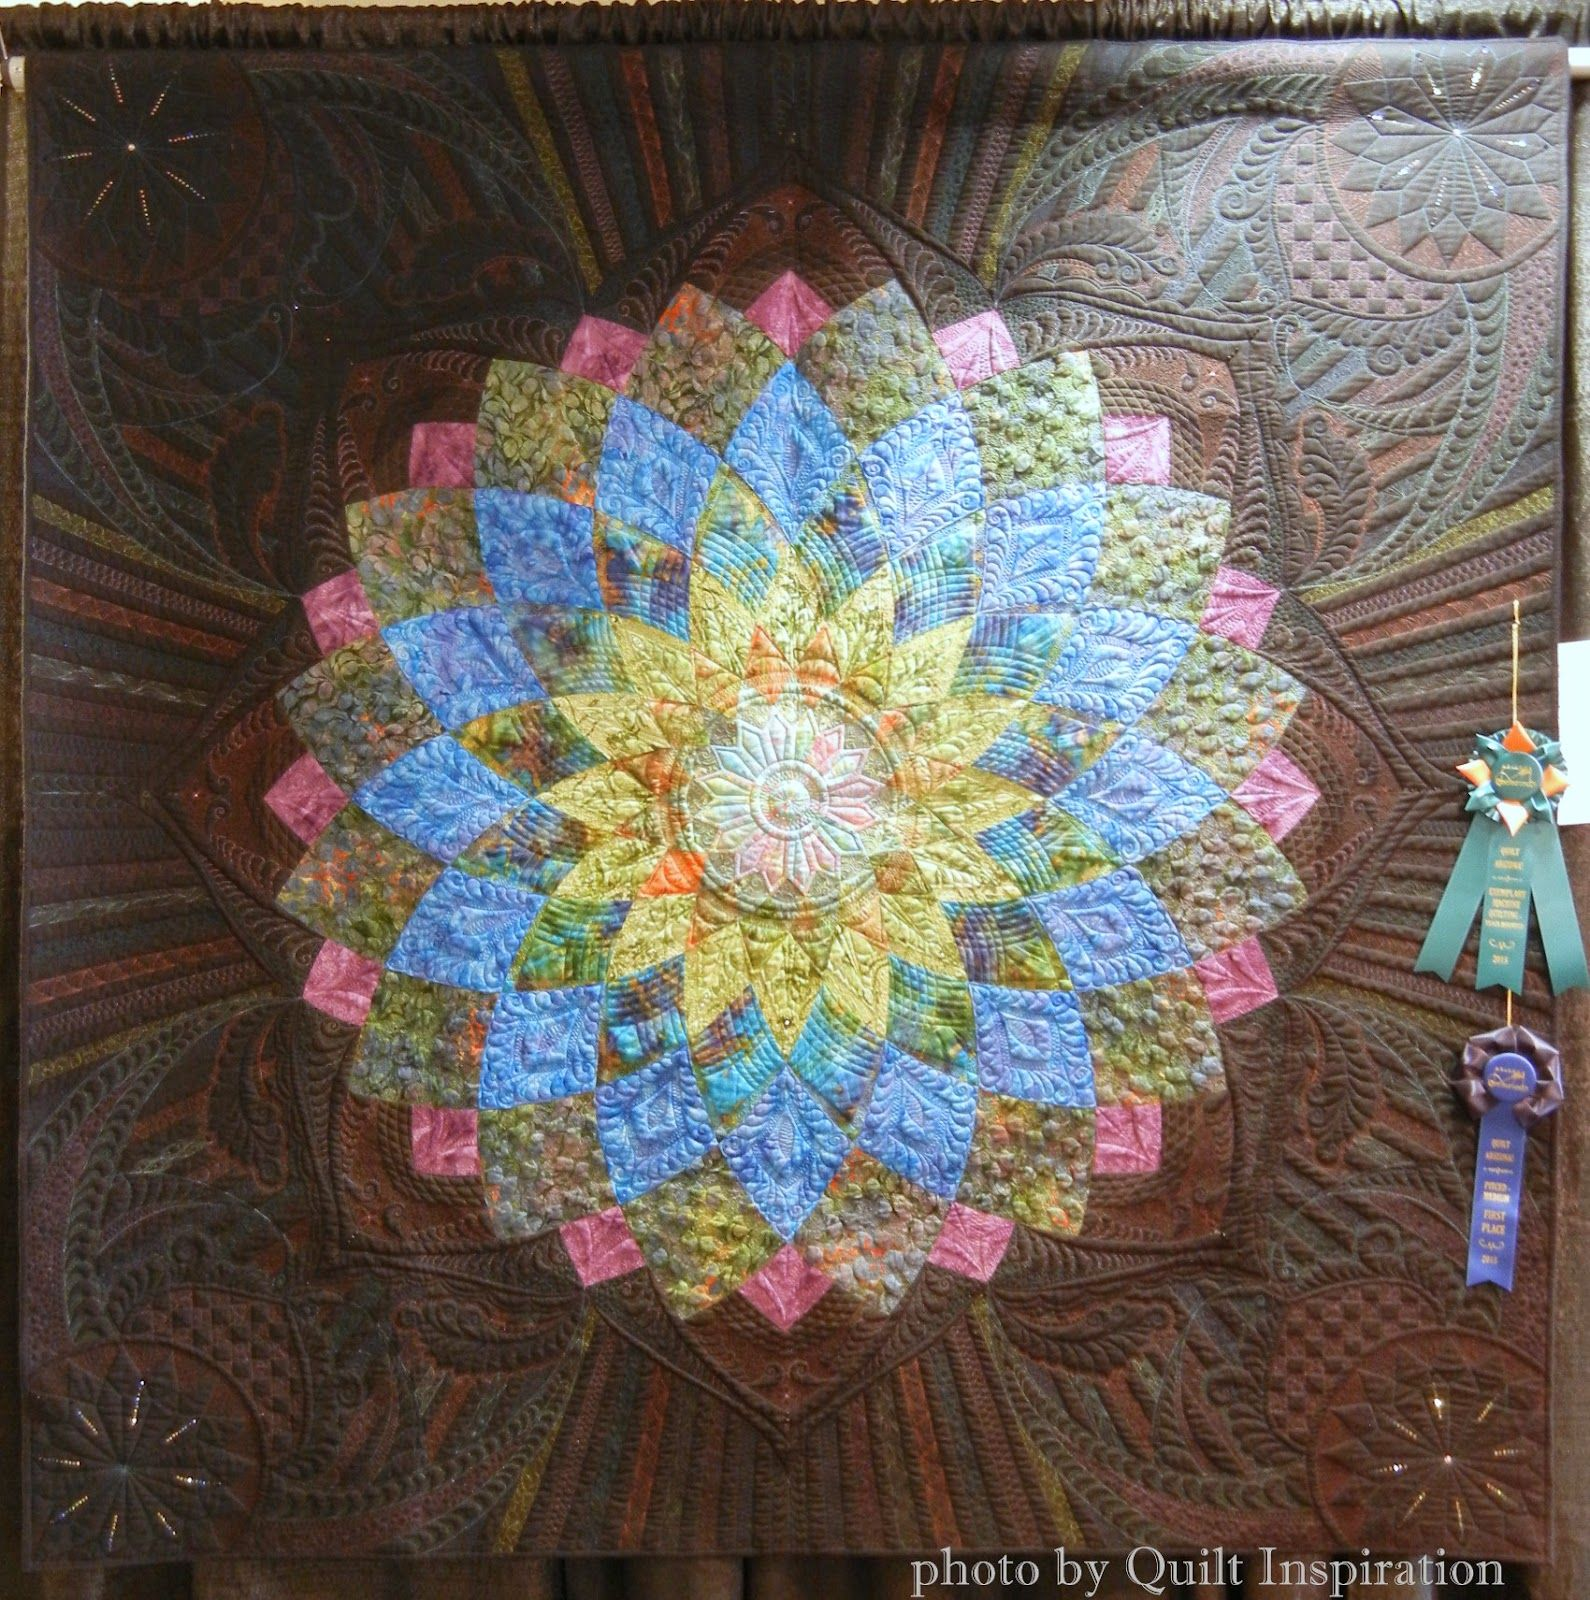 Beating the Heat at the 2015 Arizona Quilt Show